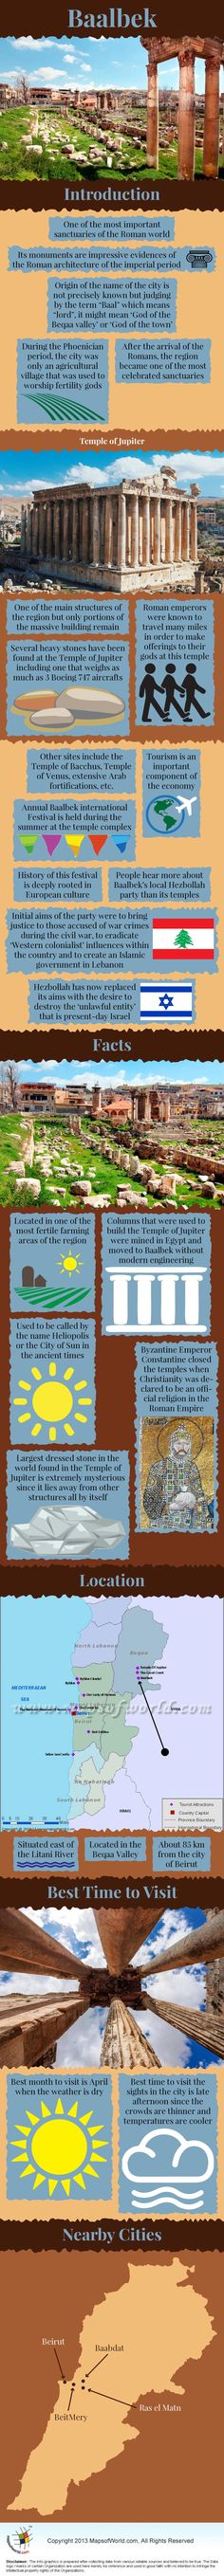 Baalbek - Facts & Infographic